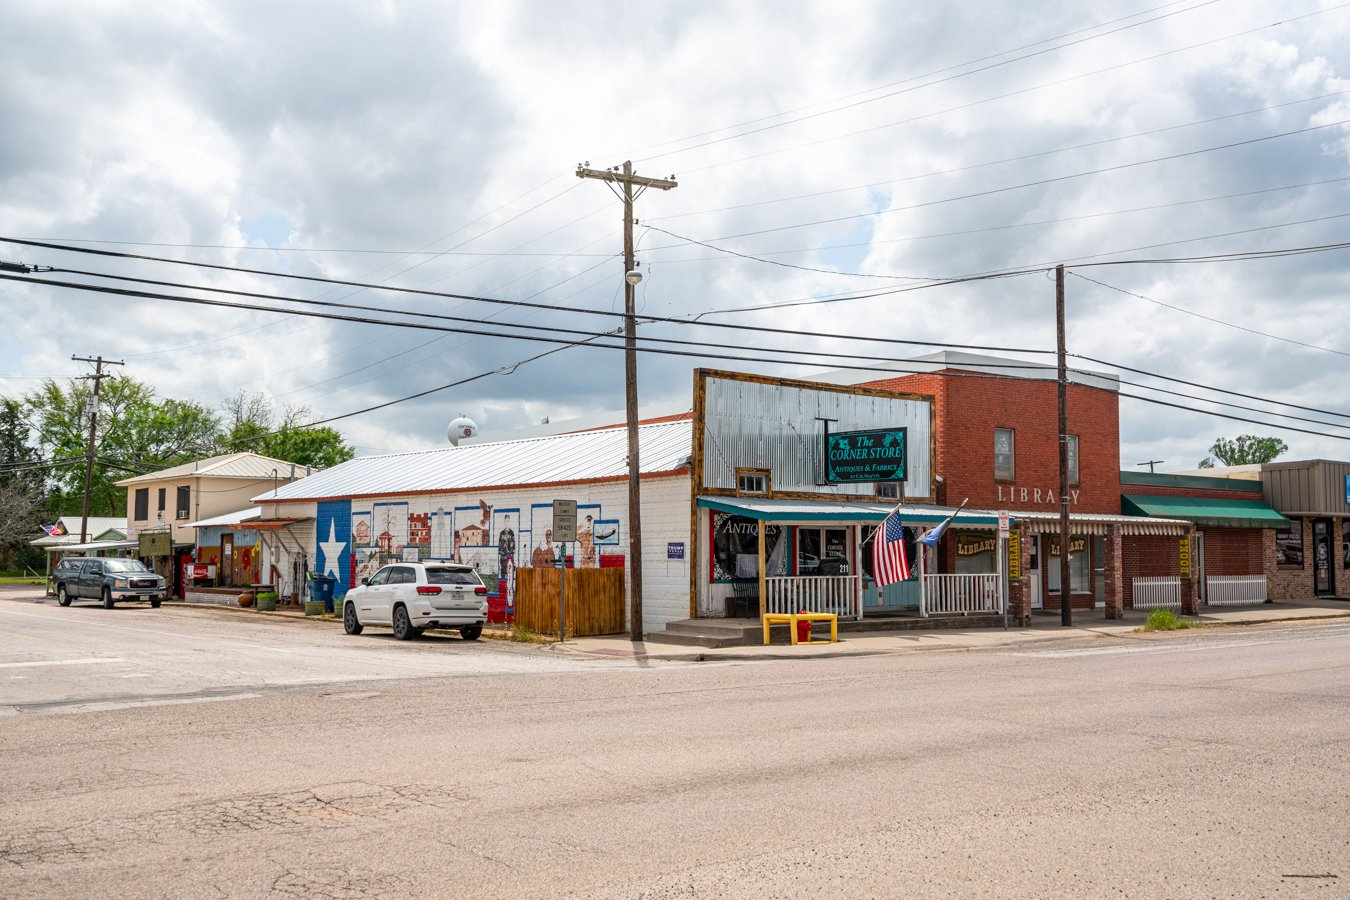 shops in downtown centerville texas with a mural visible on one side